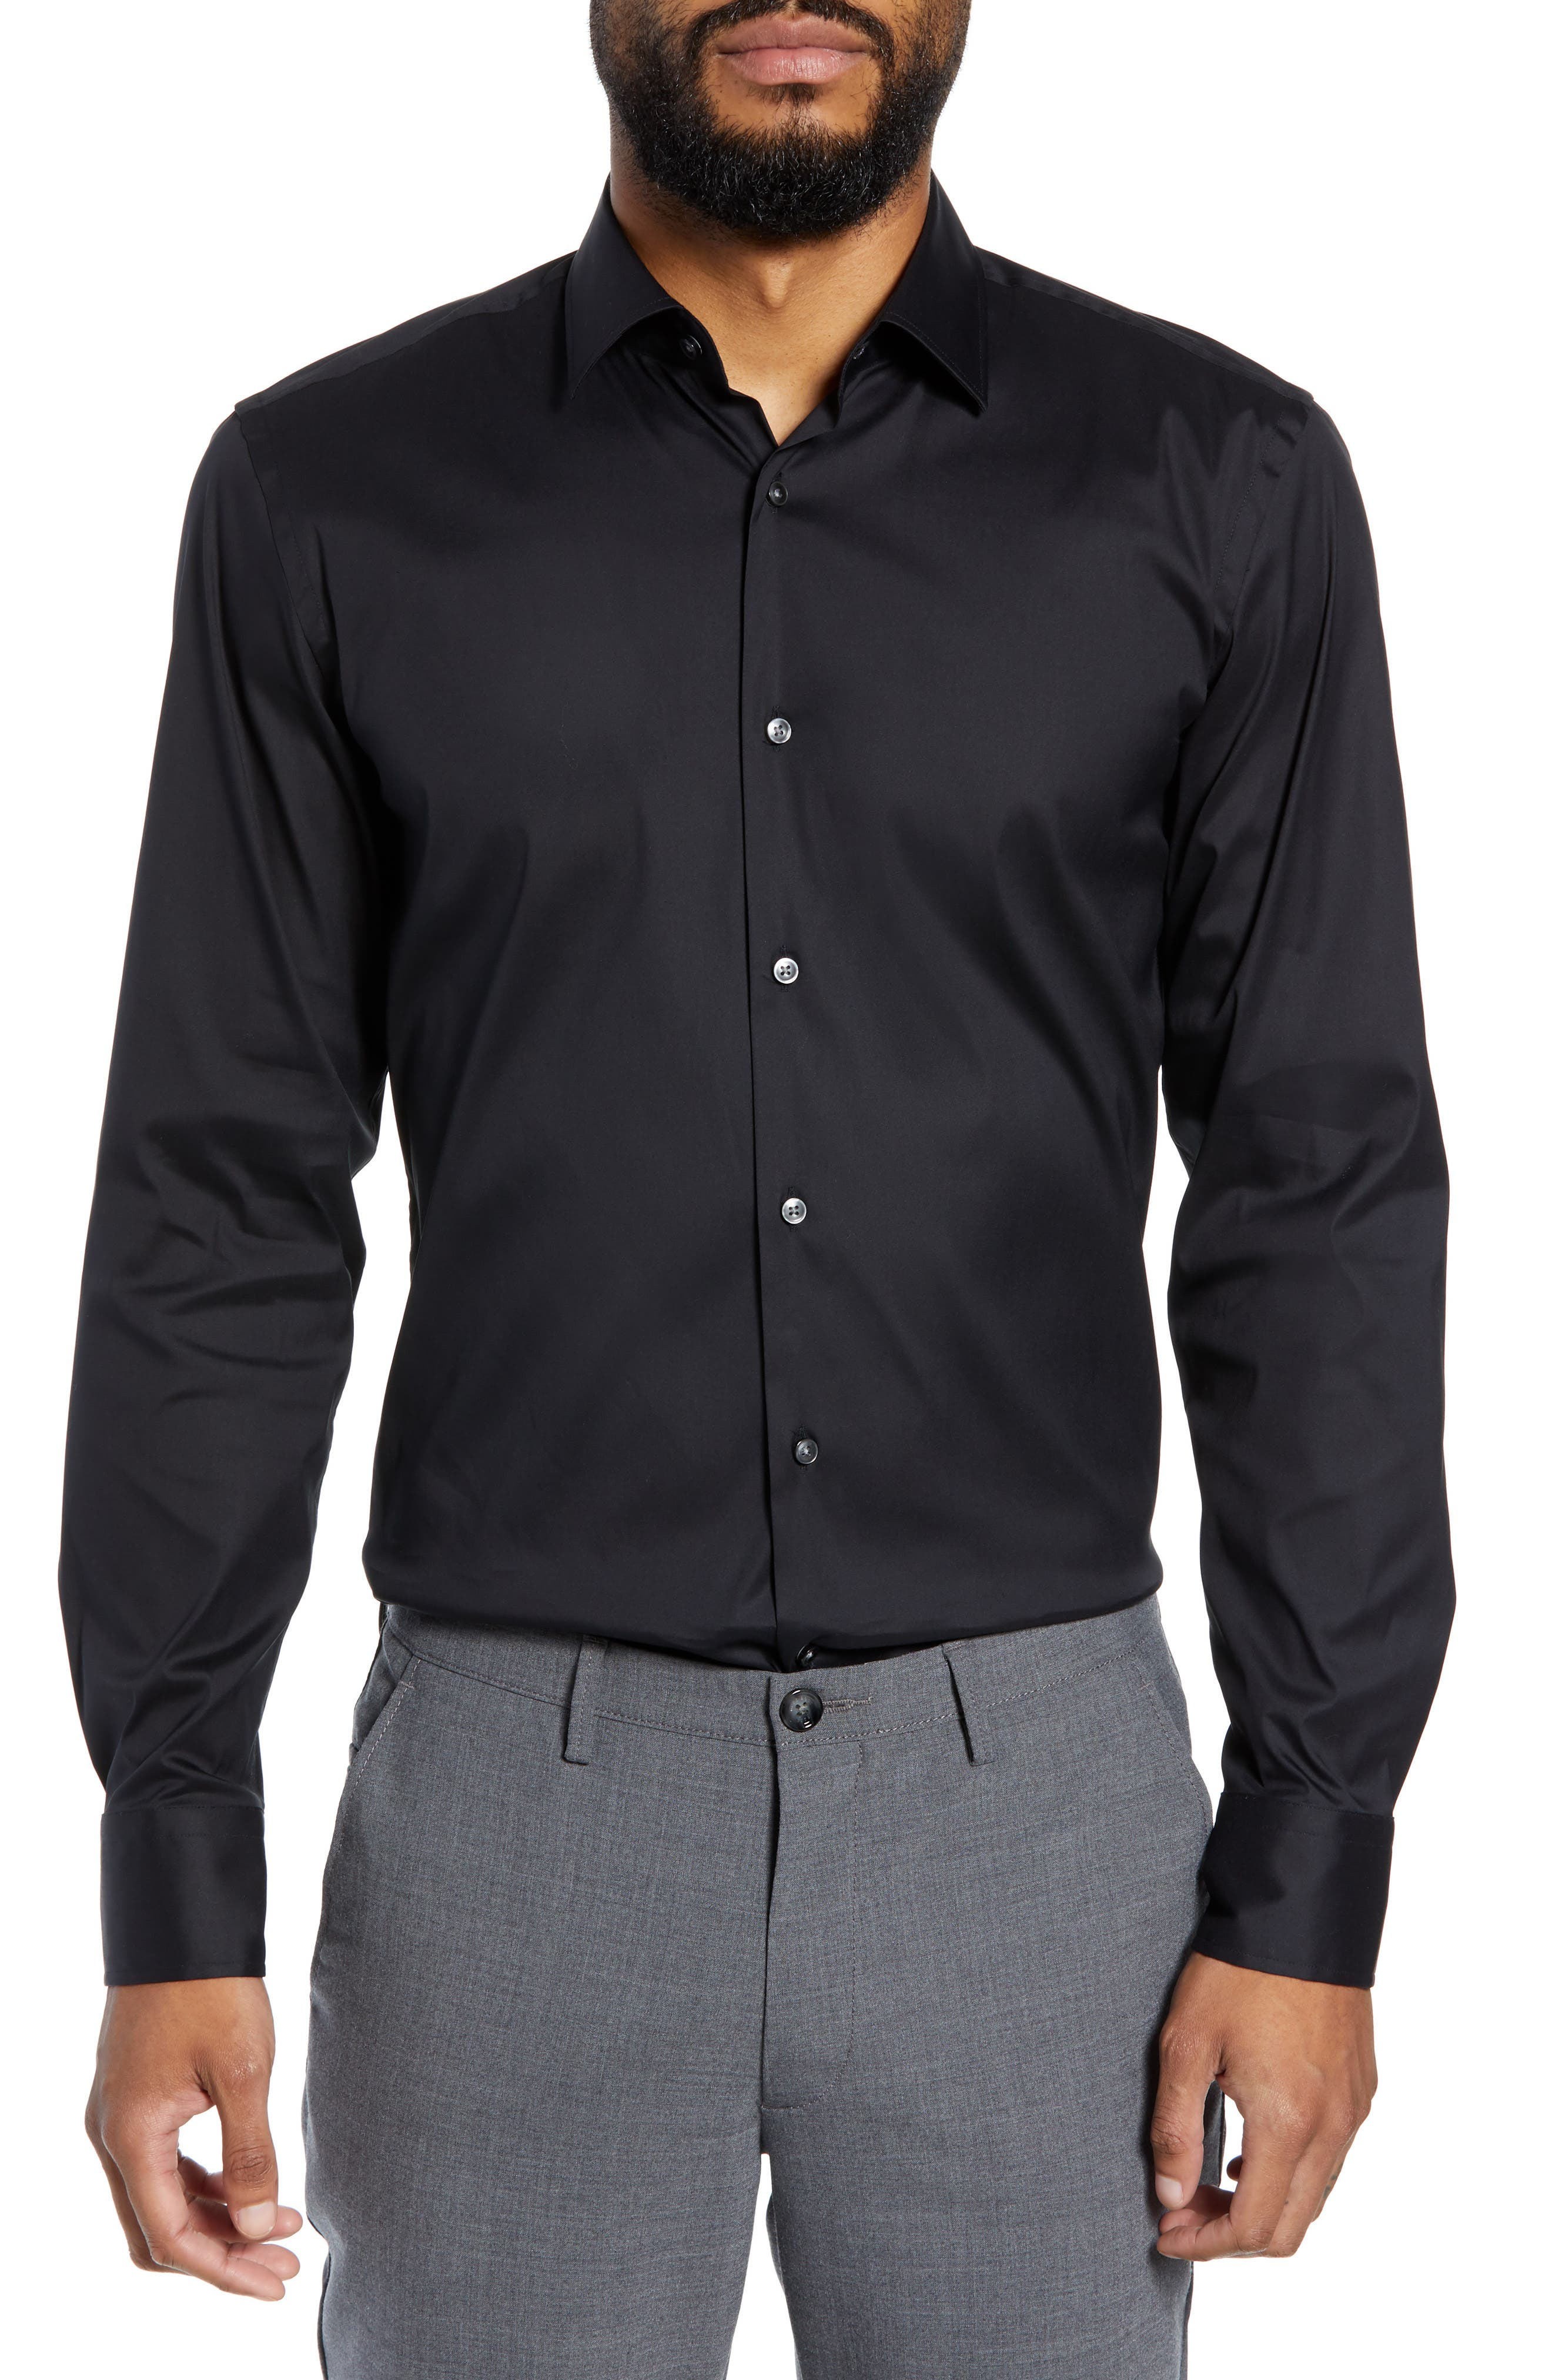 Jenno Slim Fit Stretch Solid Dress Shirt,                             Main thumbnail 1, color,                             BLACK